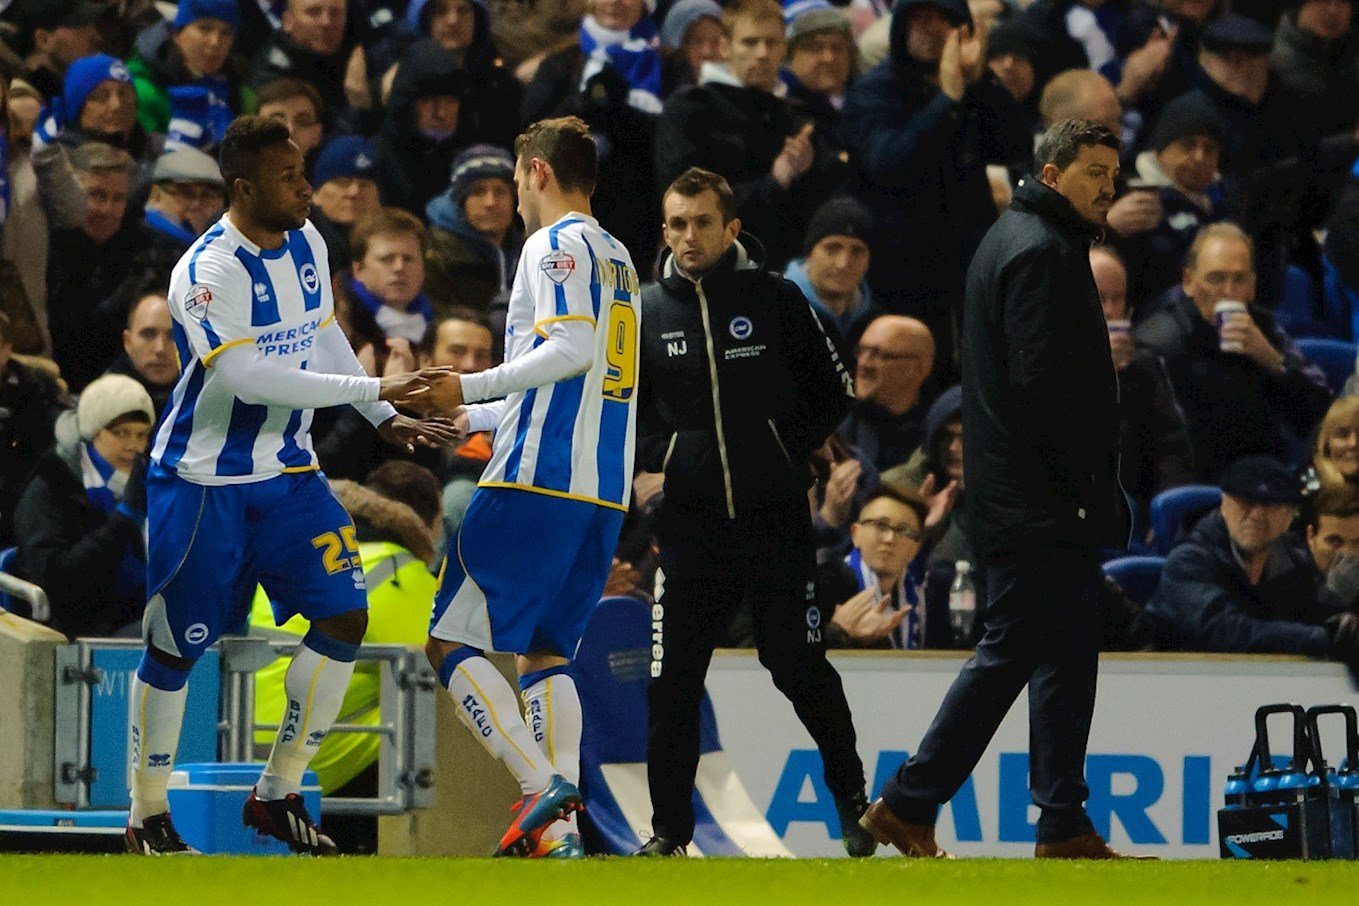 Kazenga LuaLua comes on as a substitute for Brighton, watched by then-Seagulls assistant-manager Nathan Jones